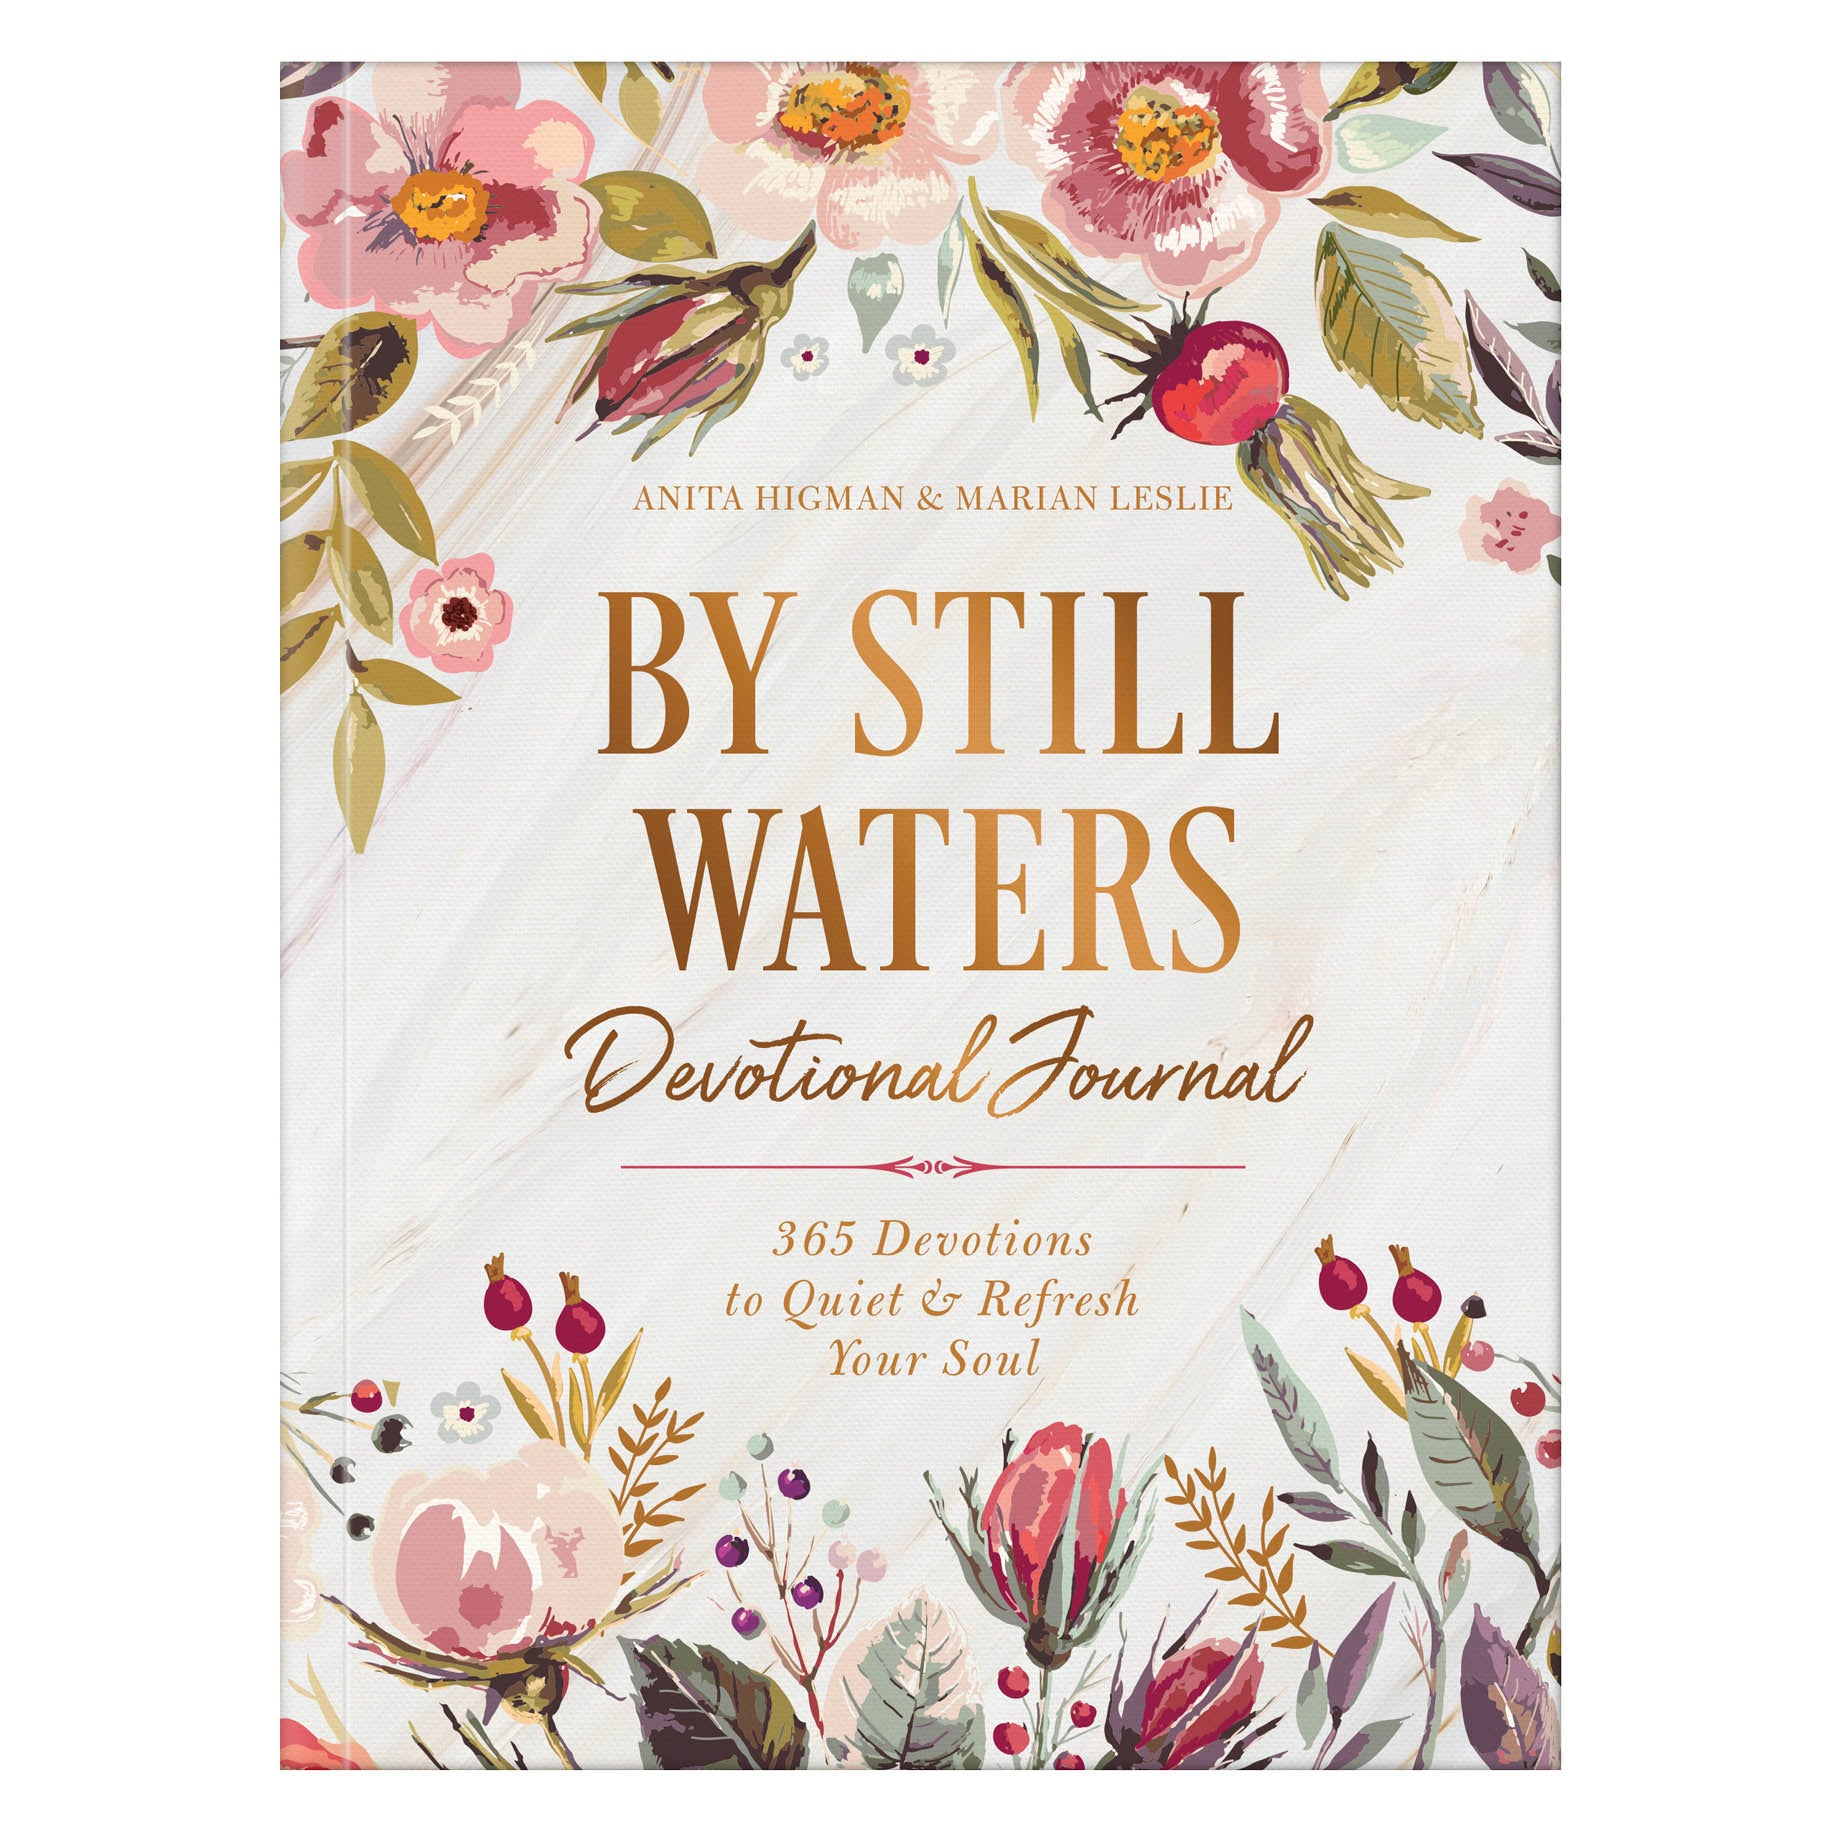 By Still Waters Devotional Journal